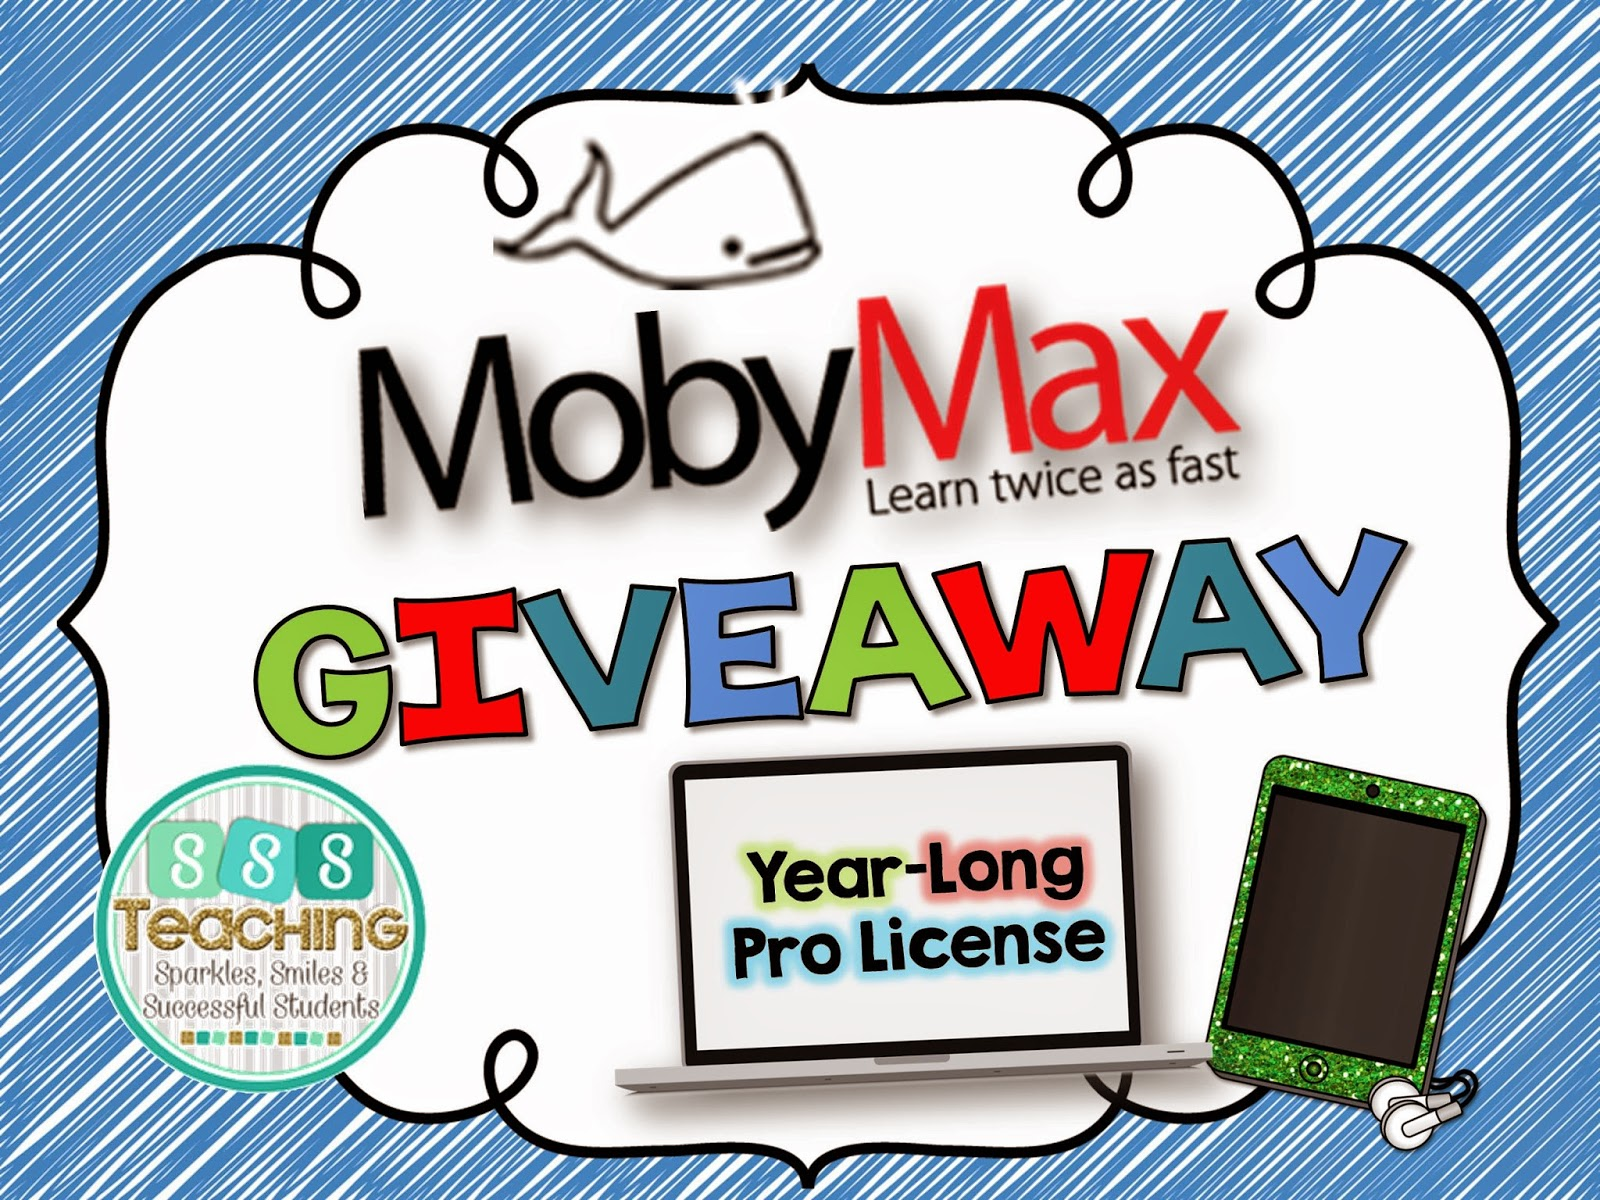 Moby Max Math Log In - Have you ever heard of mobymax if not you are missing out read on for some great info and a chance to win a year long pro license